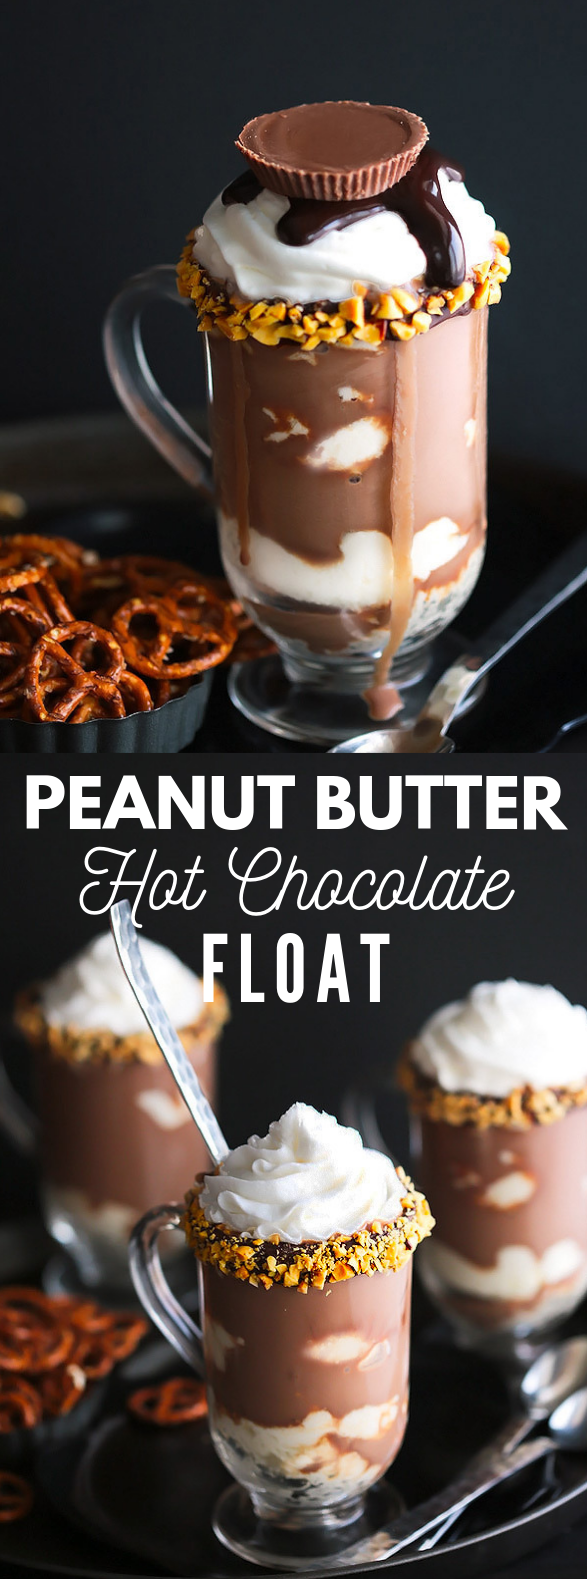 PEANUT BUTTER HOT CHOCOLATE FLOAT #drink #icecream